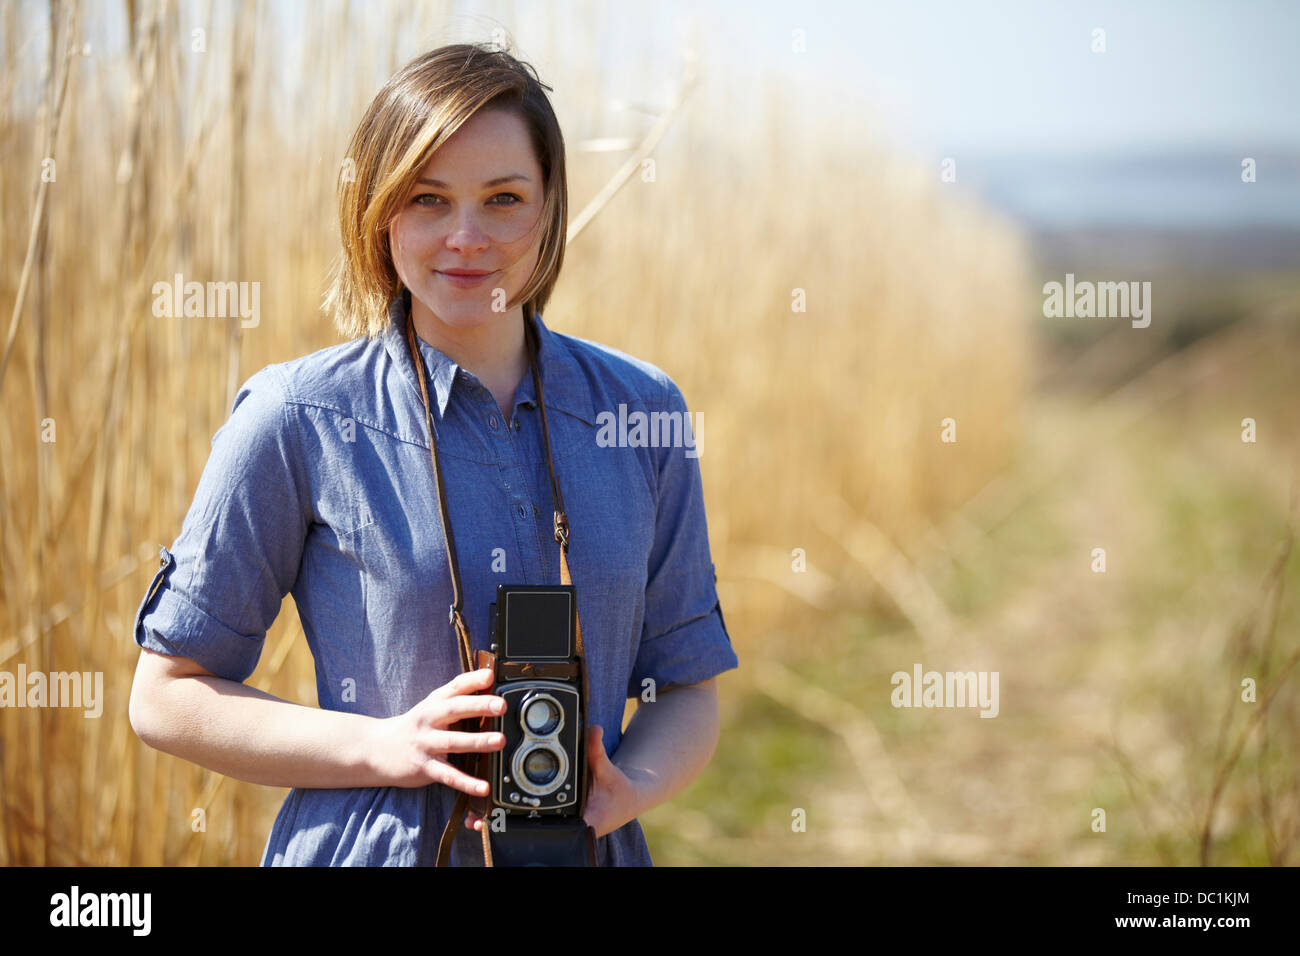 Close up portrait of young woman holding camera - Stock Image